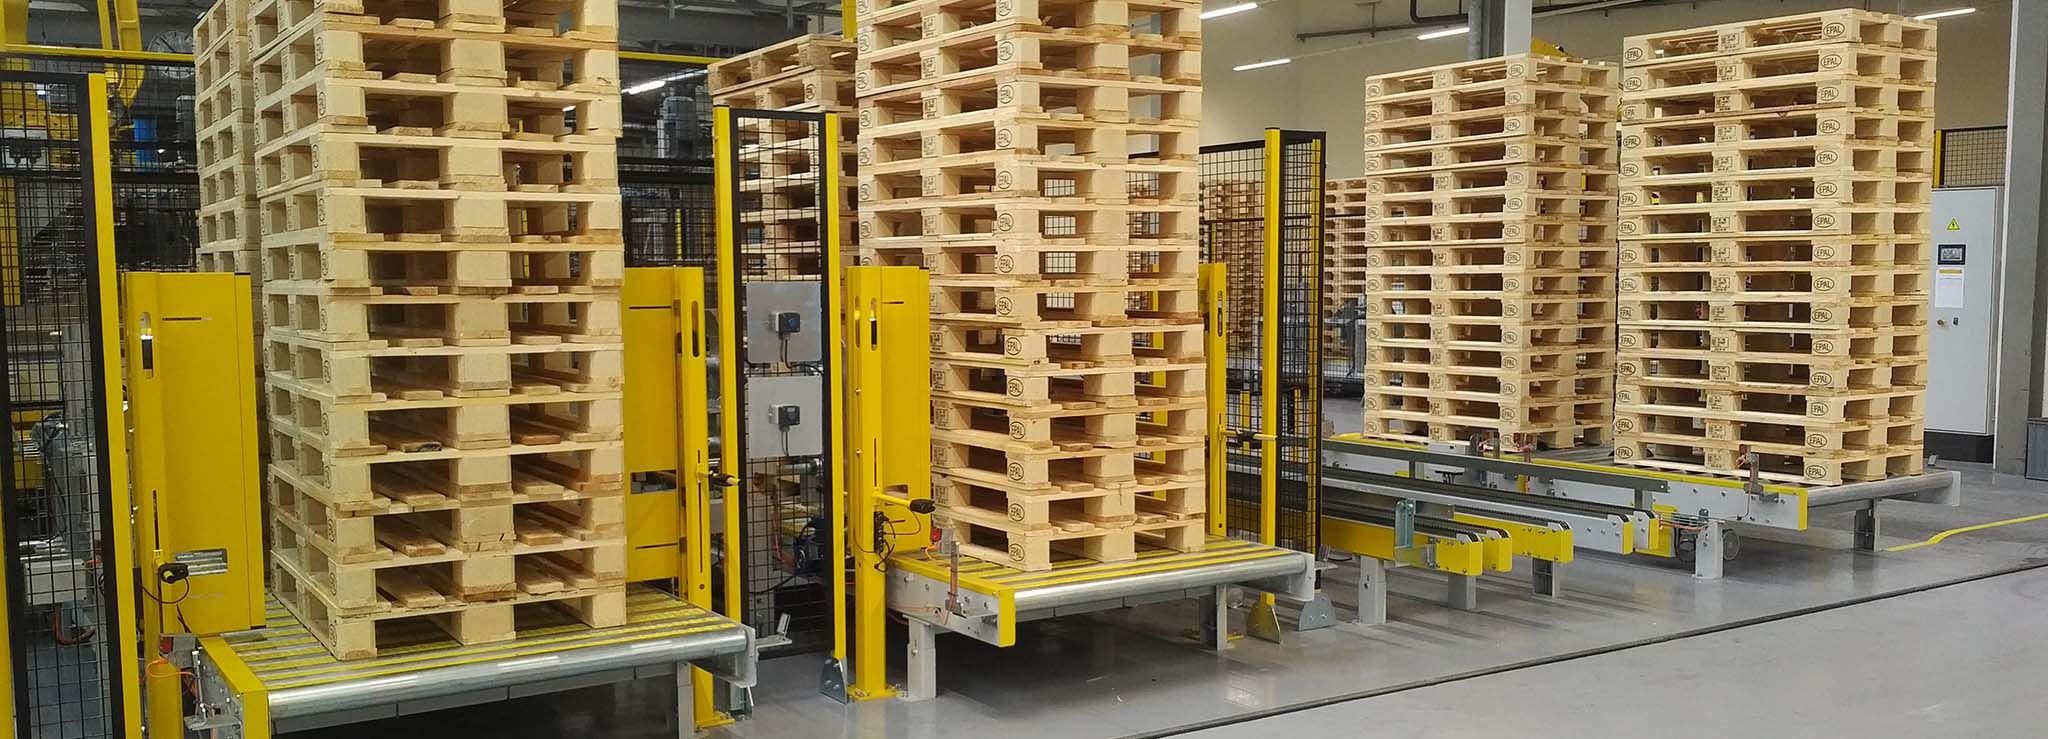 Moving pallets